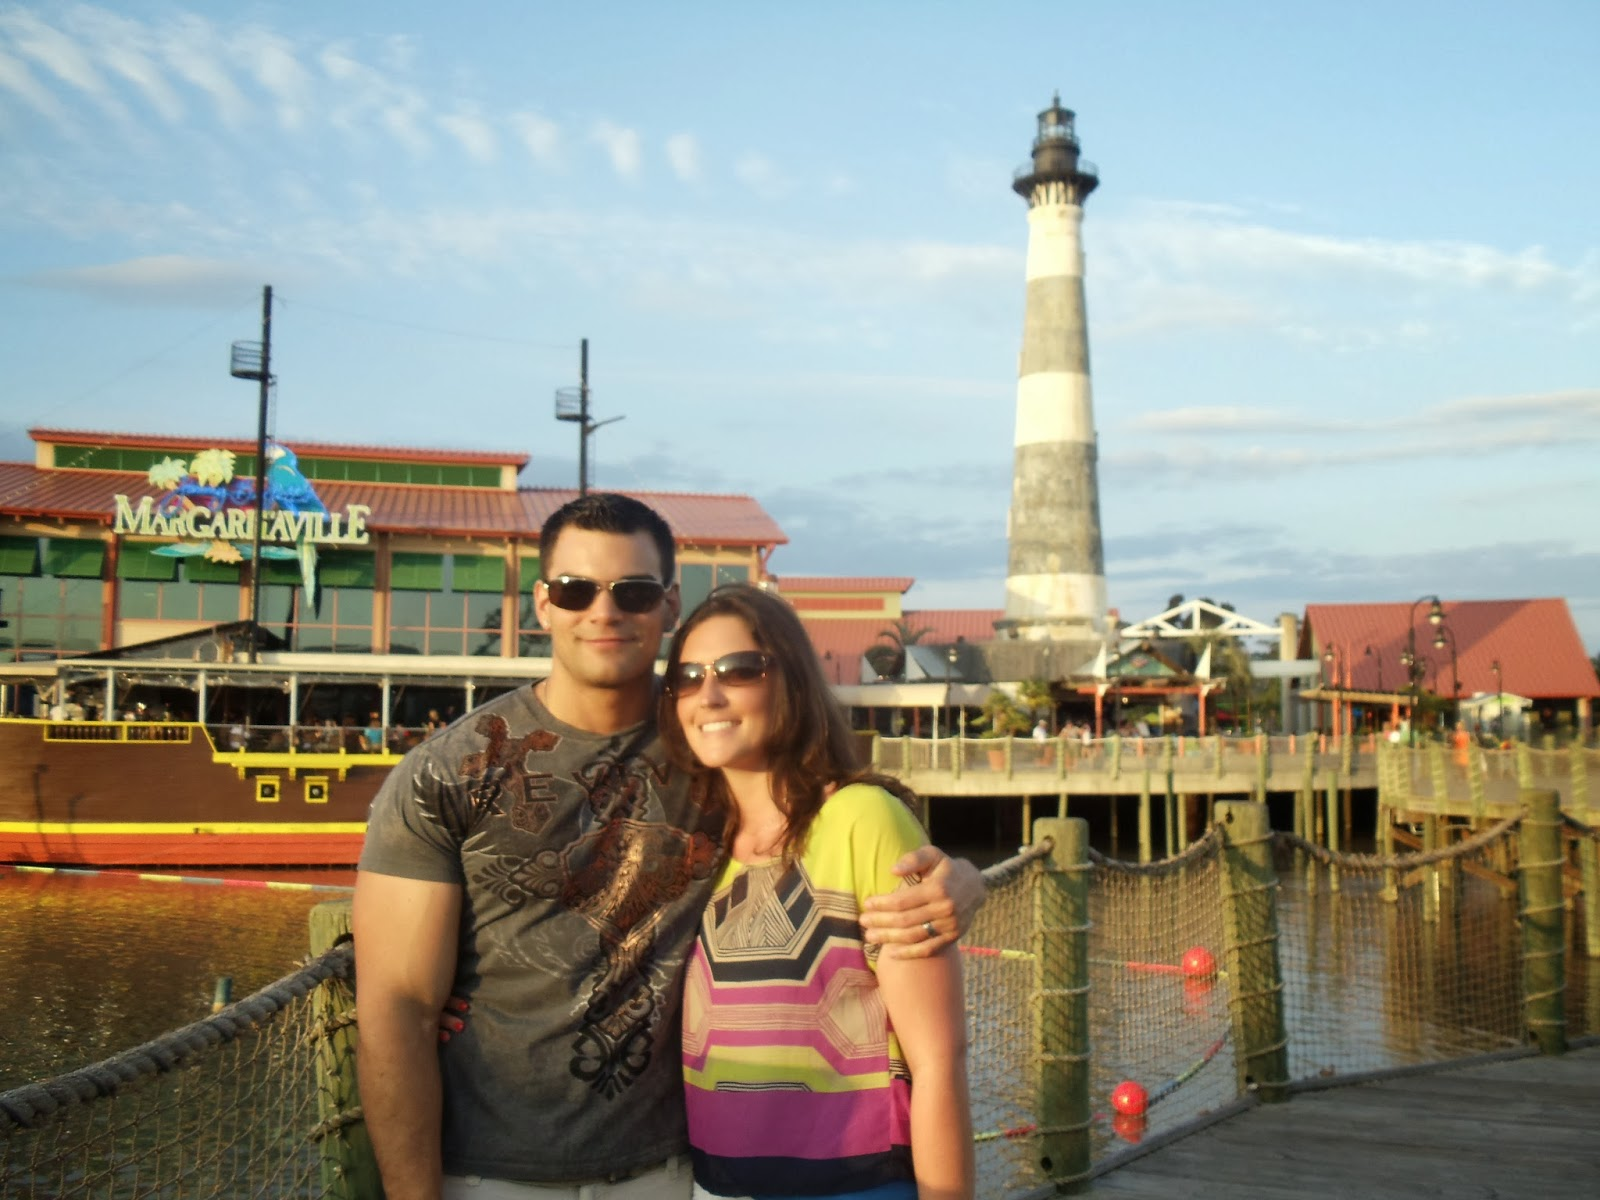 Things To Do In Myrtle Beach End Of March